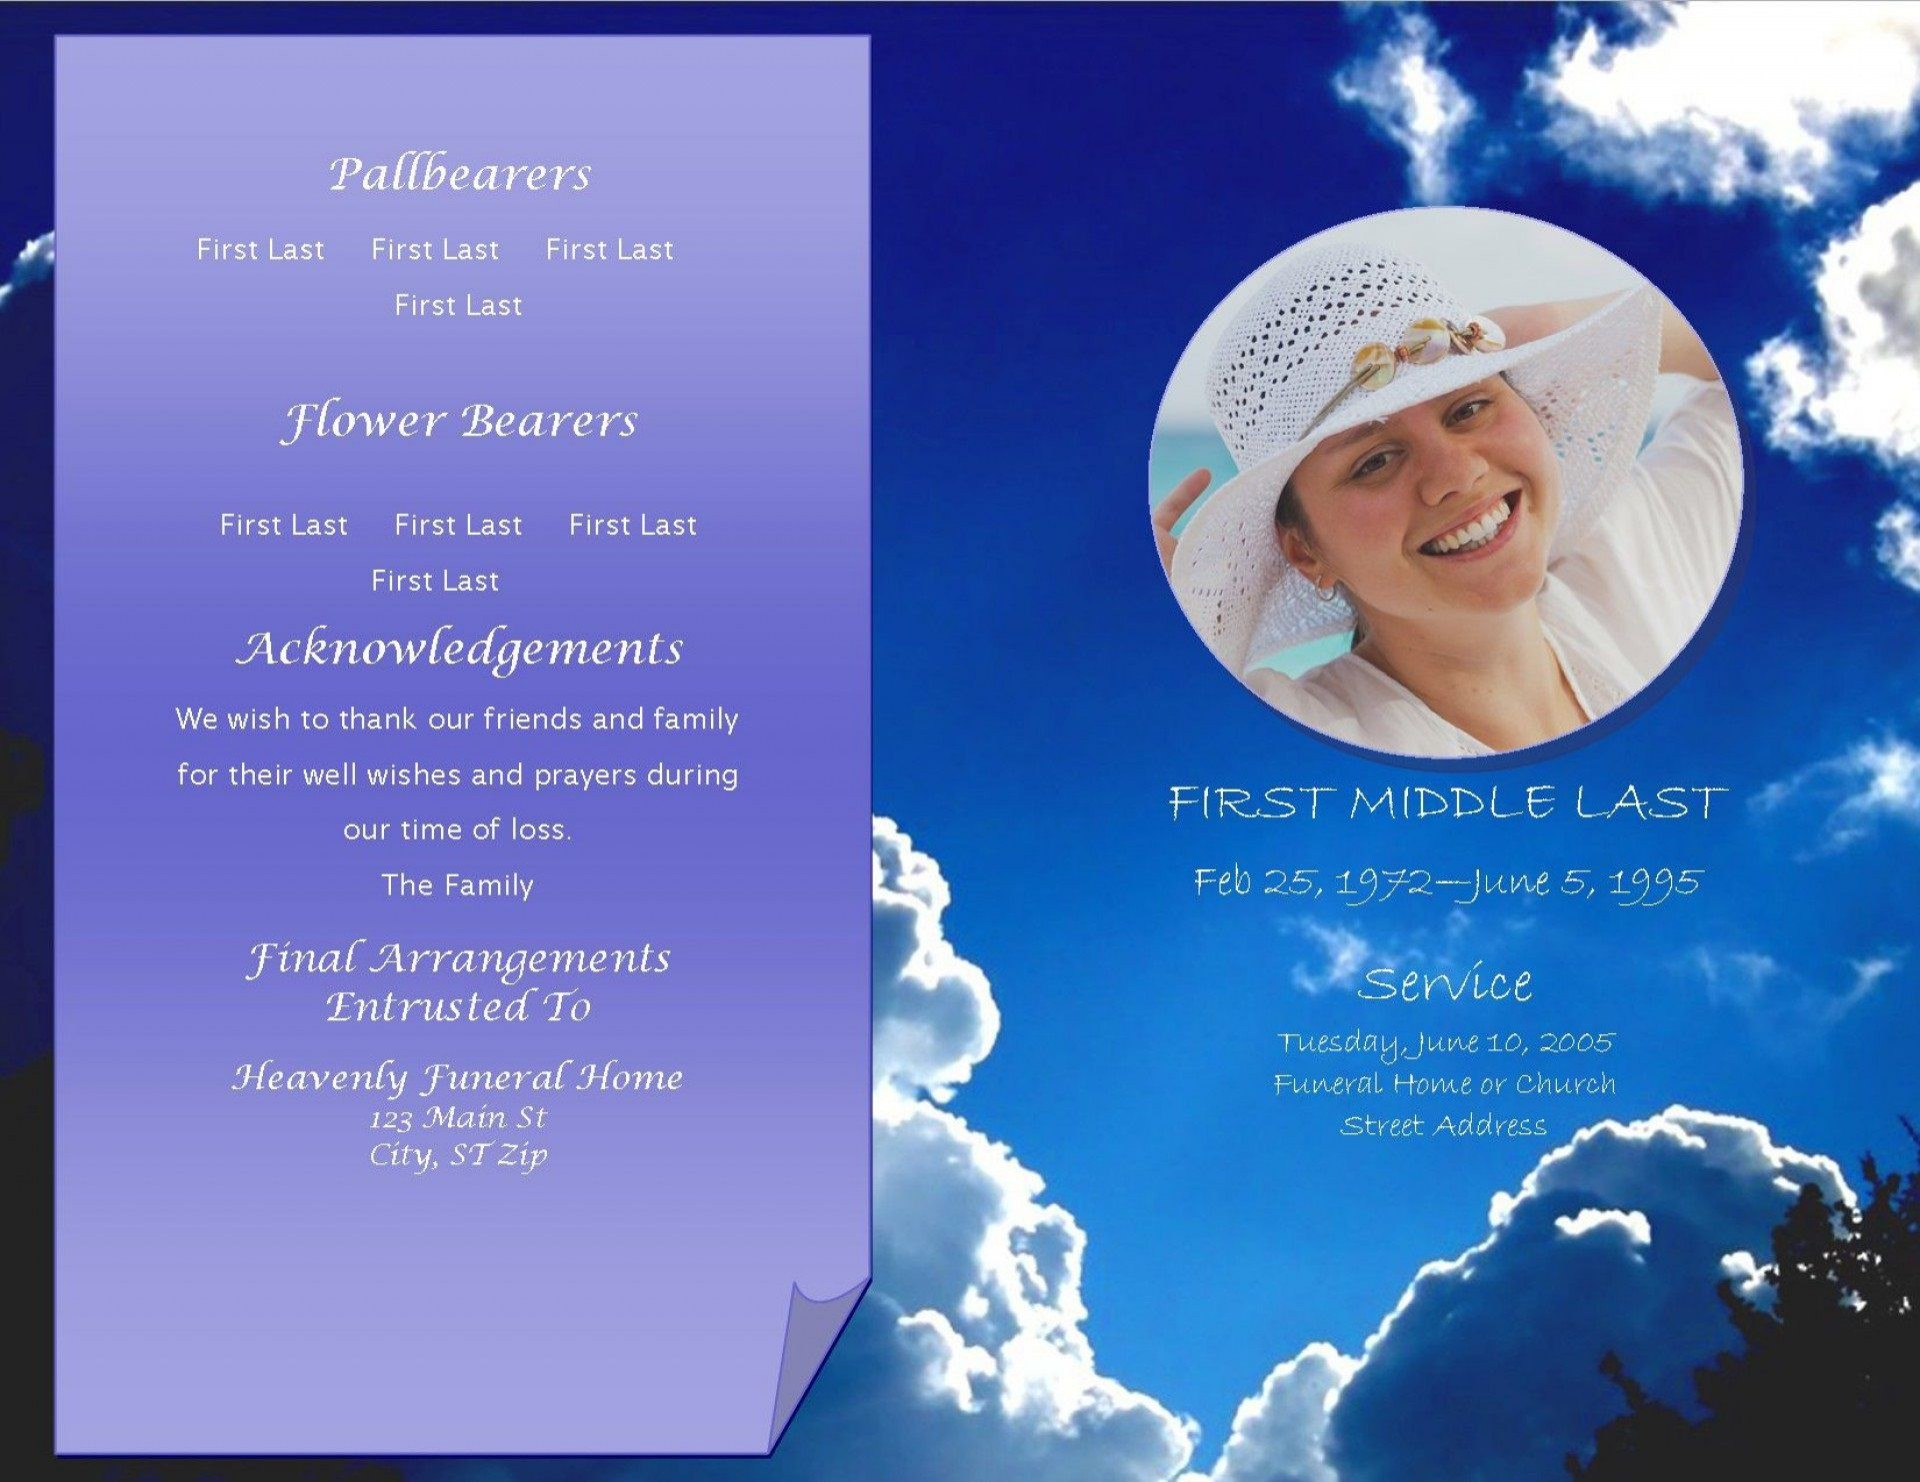 004 Excellent Celebration Of Life Invitation Template Free Concept 1920